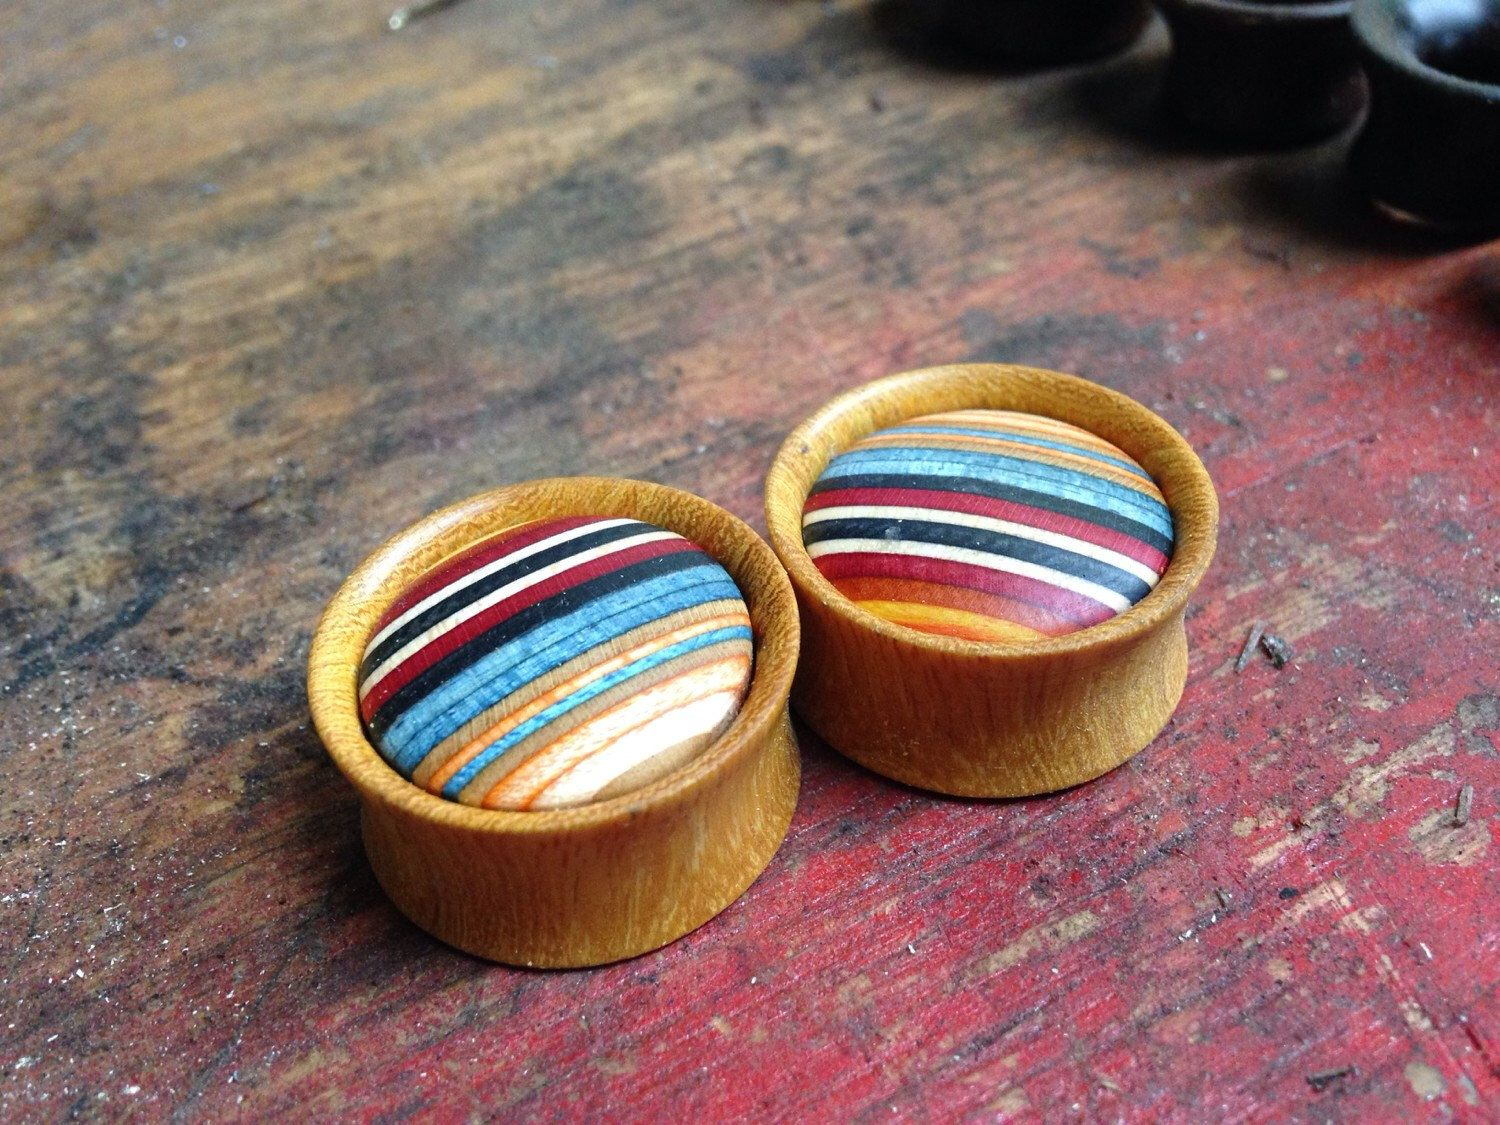 """Size 1/2"""" and material would be Chechen Wooden Plugs with Limited Edition BUBBLE CAB Skateboard Inlay by BarkandBole on Etsy https://www.etsy.com/listing/210498108/wooden-plugs-with-limited-edition-bubble"""